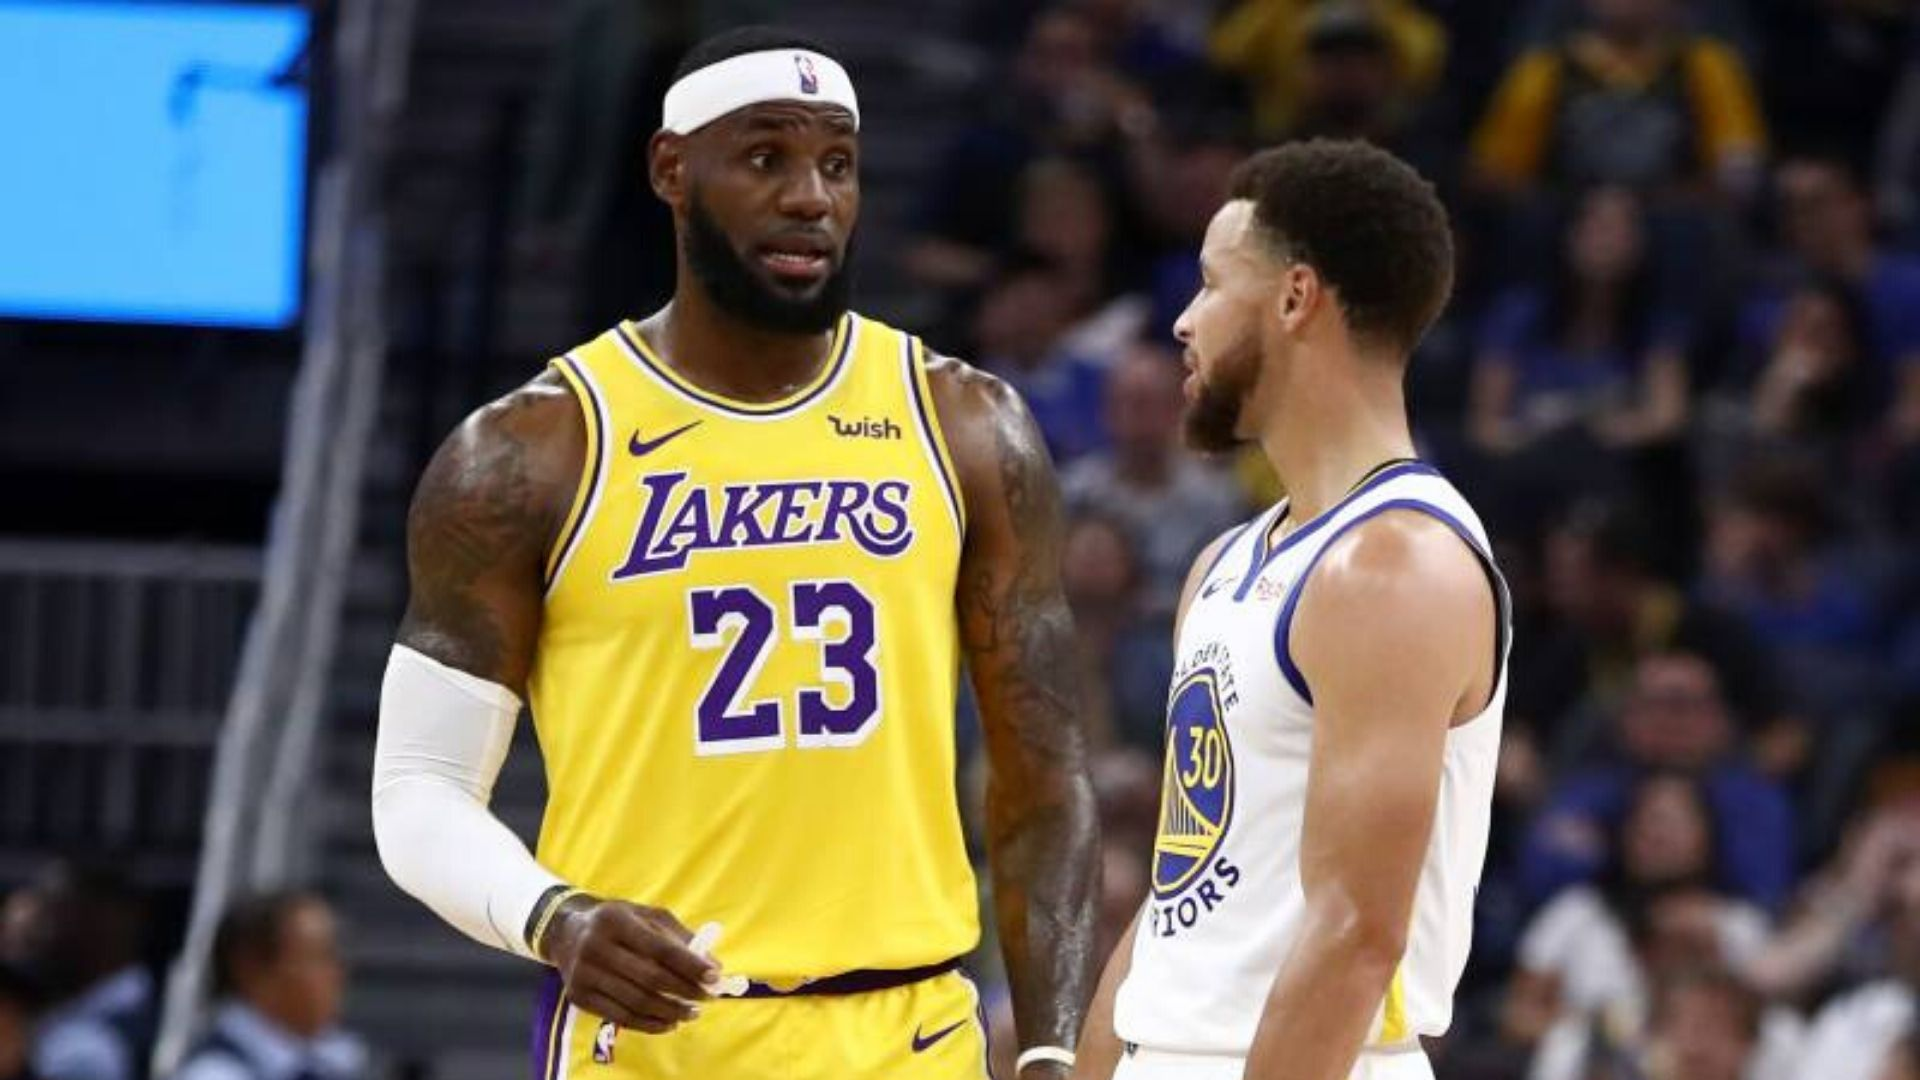 LeBron James: Lakers stars answers if 'Steph Curry is great'